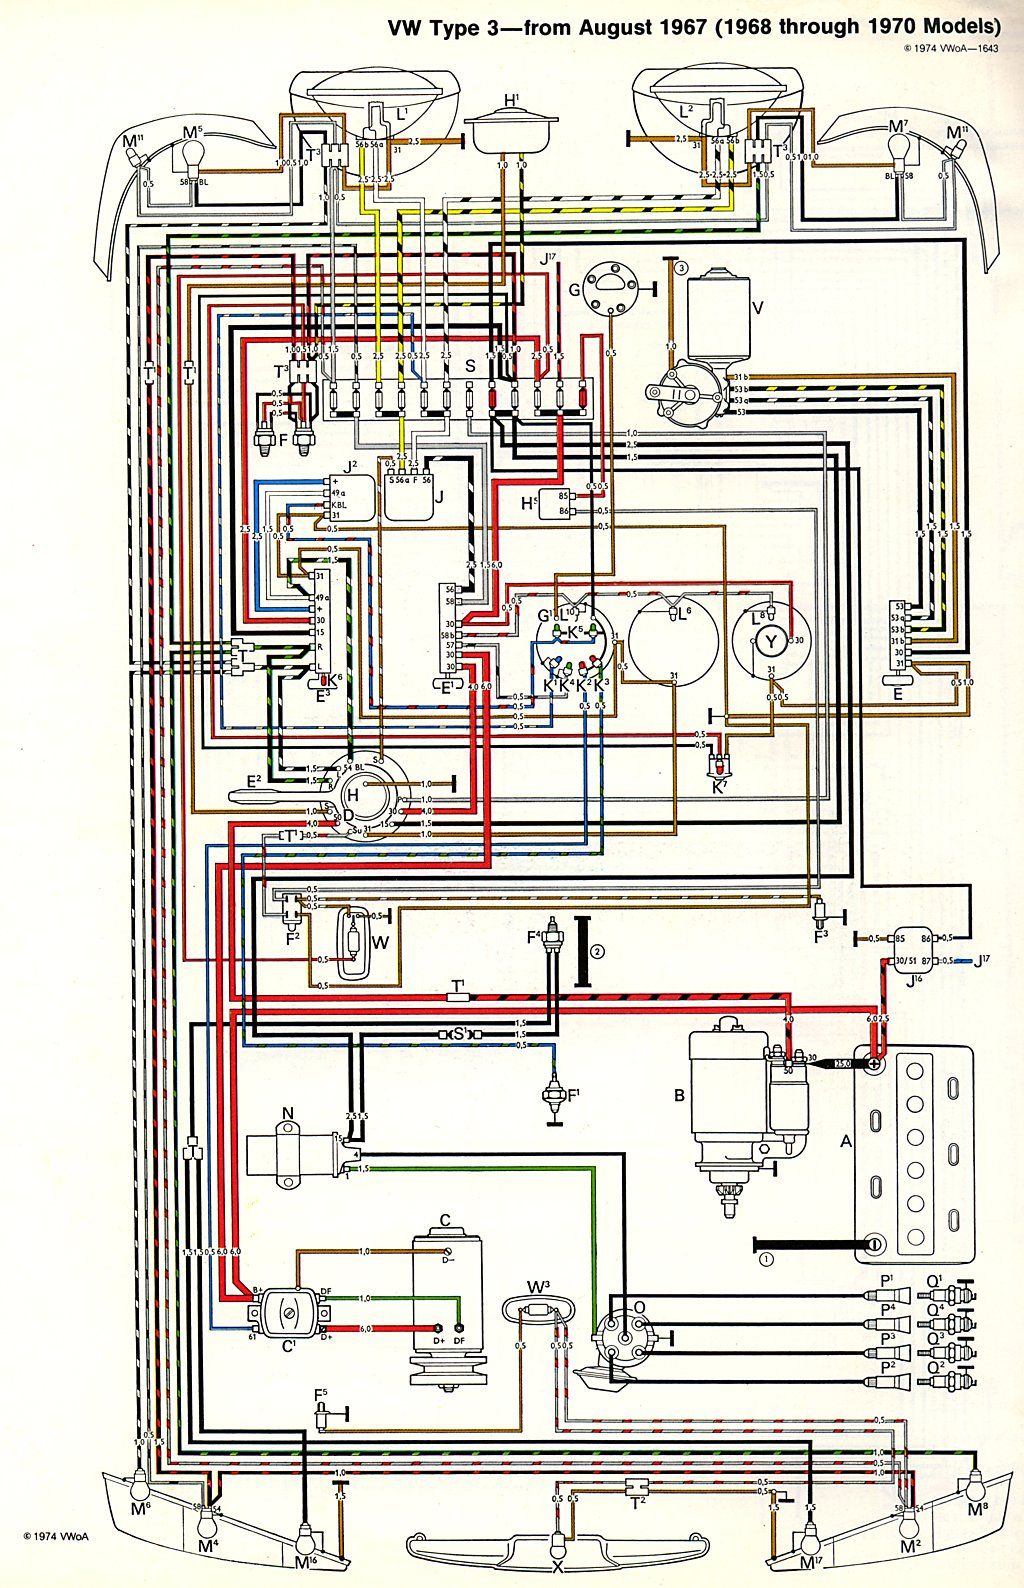 73 Vw Wiring Diagram Archive Of Automotive Rail Ignition Car Wire Schematics Rh Thyl Co Uk Beetle Tail Light